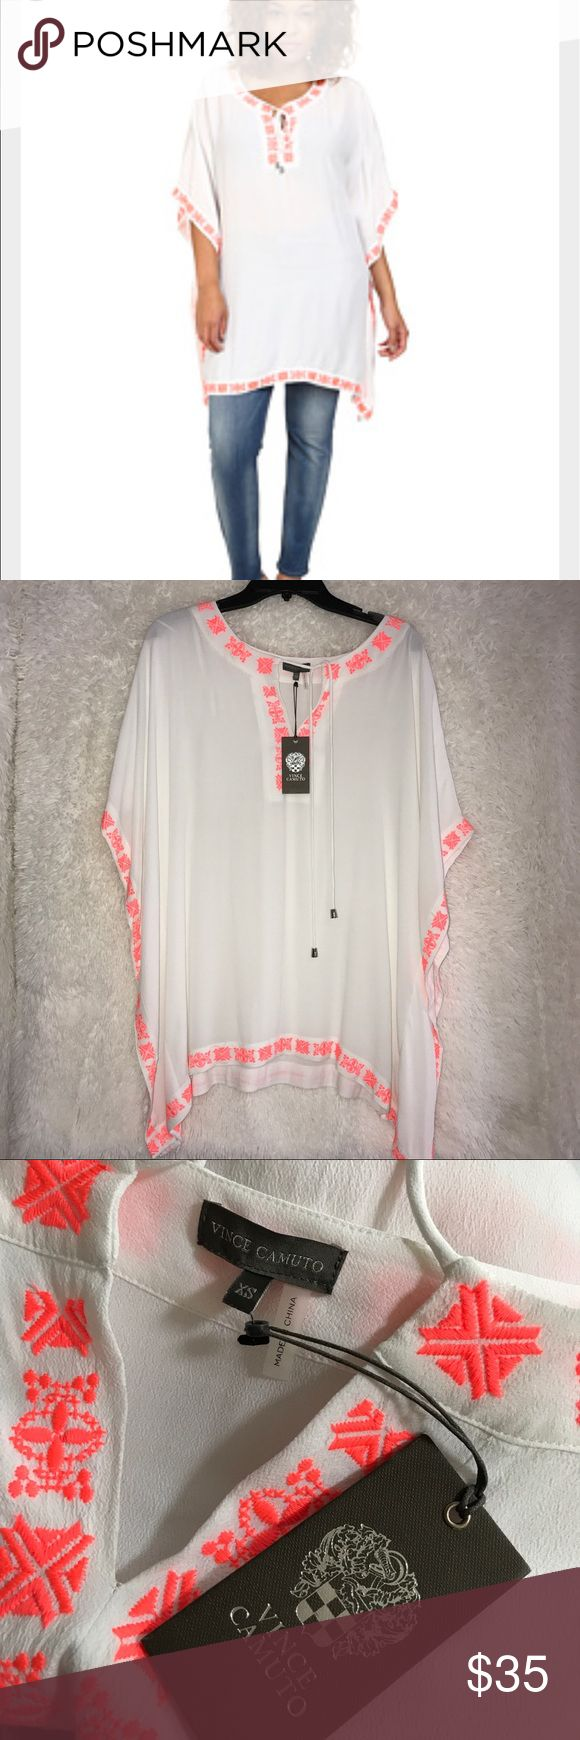 Vince Camuto Woman Top poncho Ultra White Vince Camuto Tropical Rain Front Lace Poncho Embroidery Womens Clothing, You may dazzle and wow in this stunning Vince Camuto poncho. Top flaunts a soft bamboo fabrication. Delicate sewed trim enhances your thing to chic sophistication. Split neckline with drawstring tie. Billowing three quarter sleeves. Handkerchief hemline. 100 percent rayon. Machine scrub cold, line dried up. Imported….  This top new with tags  Size: XS  Thank you for shopping 🛒…